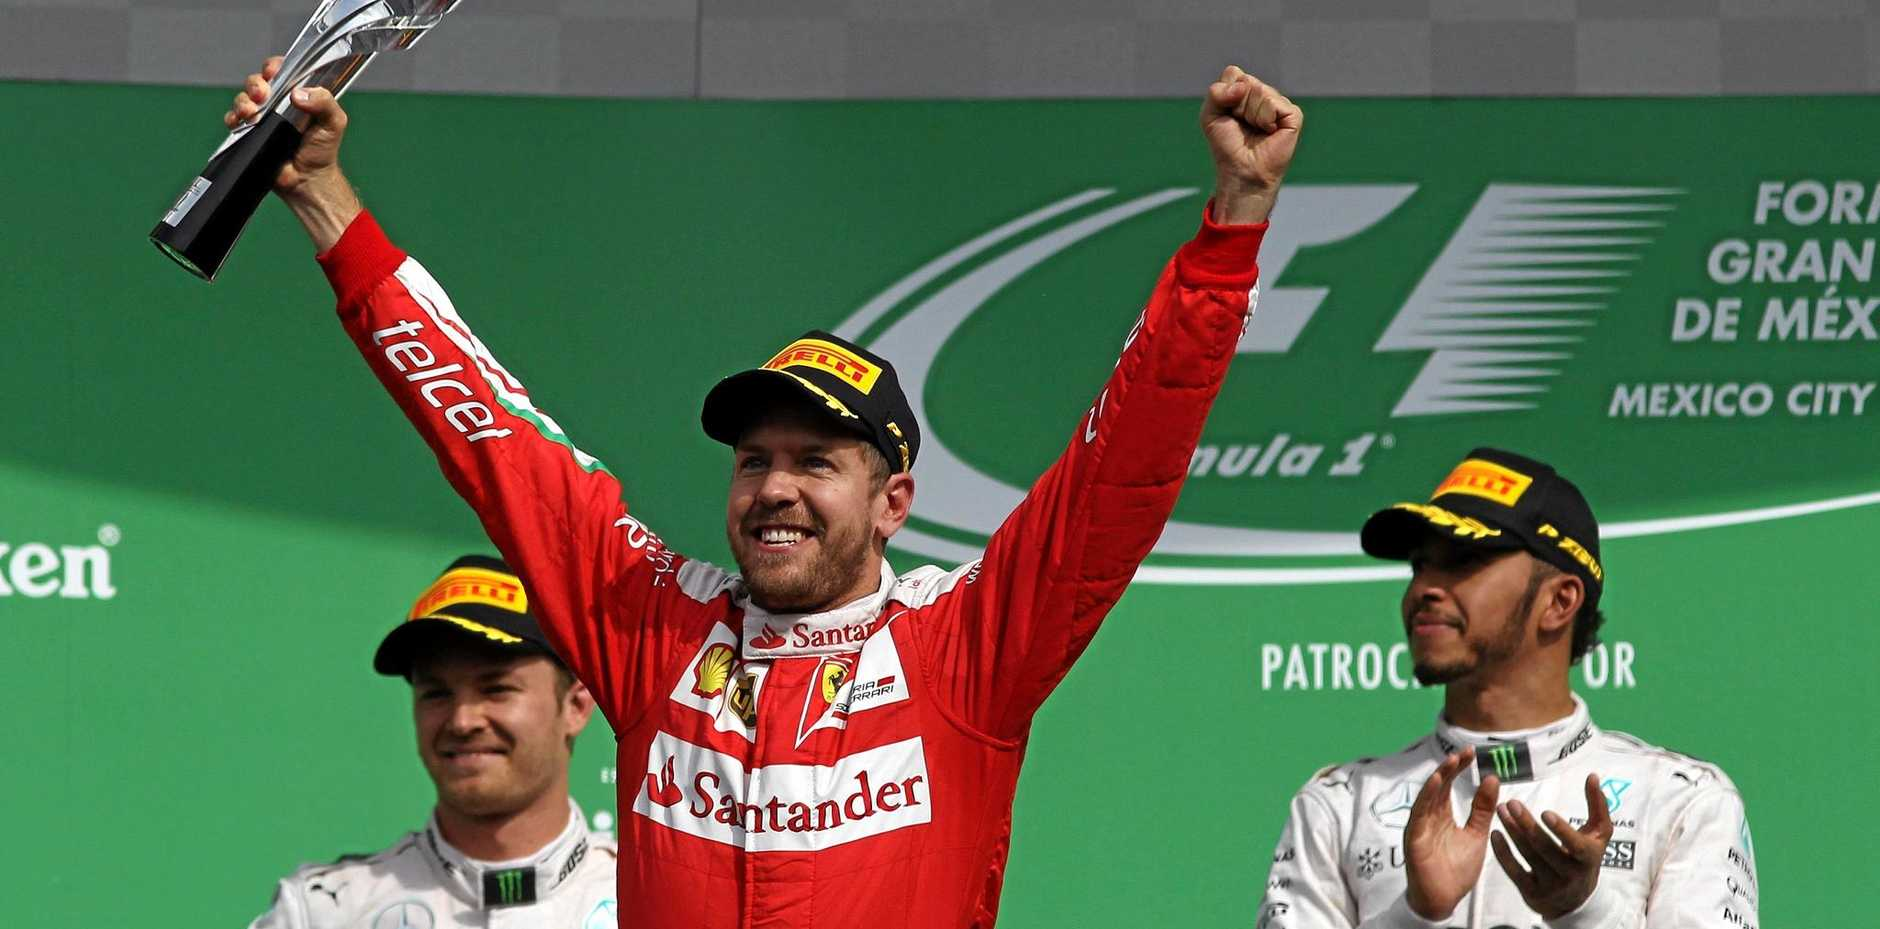 Sebastian Vettel celebrates finishing third in Mexico.